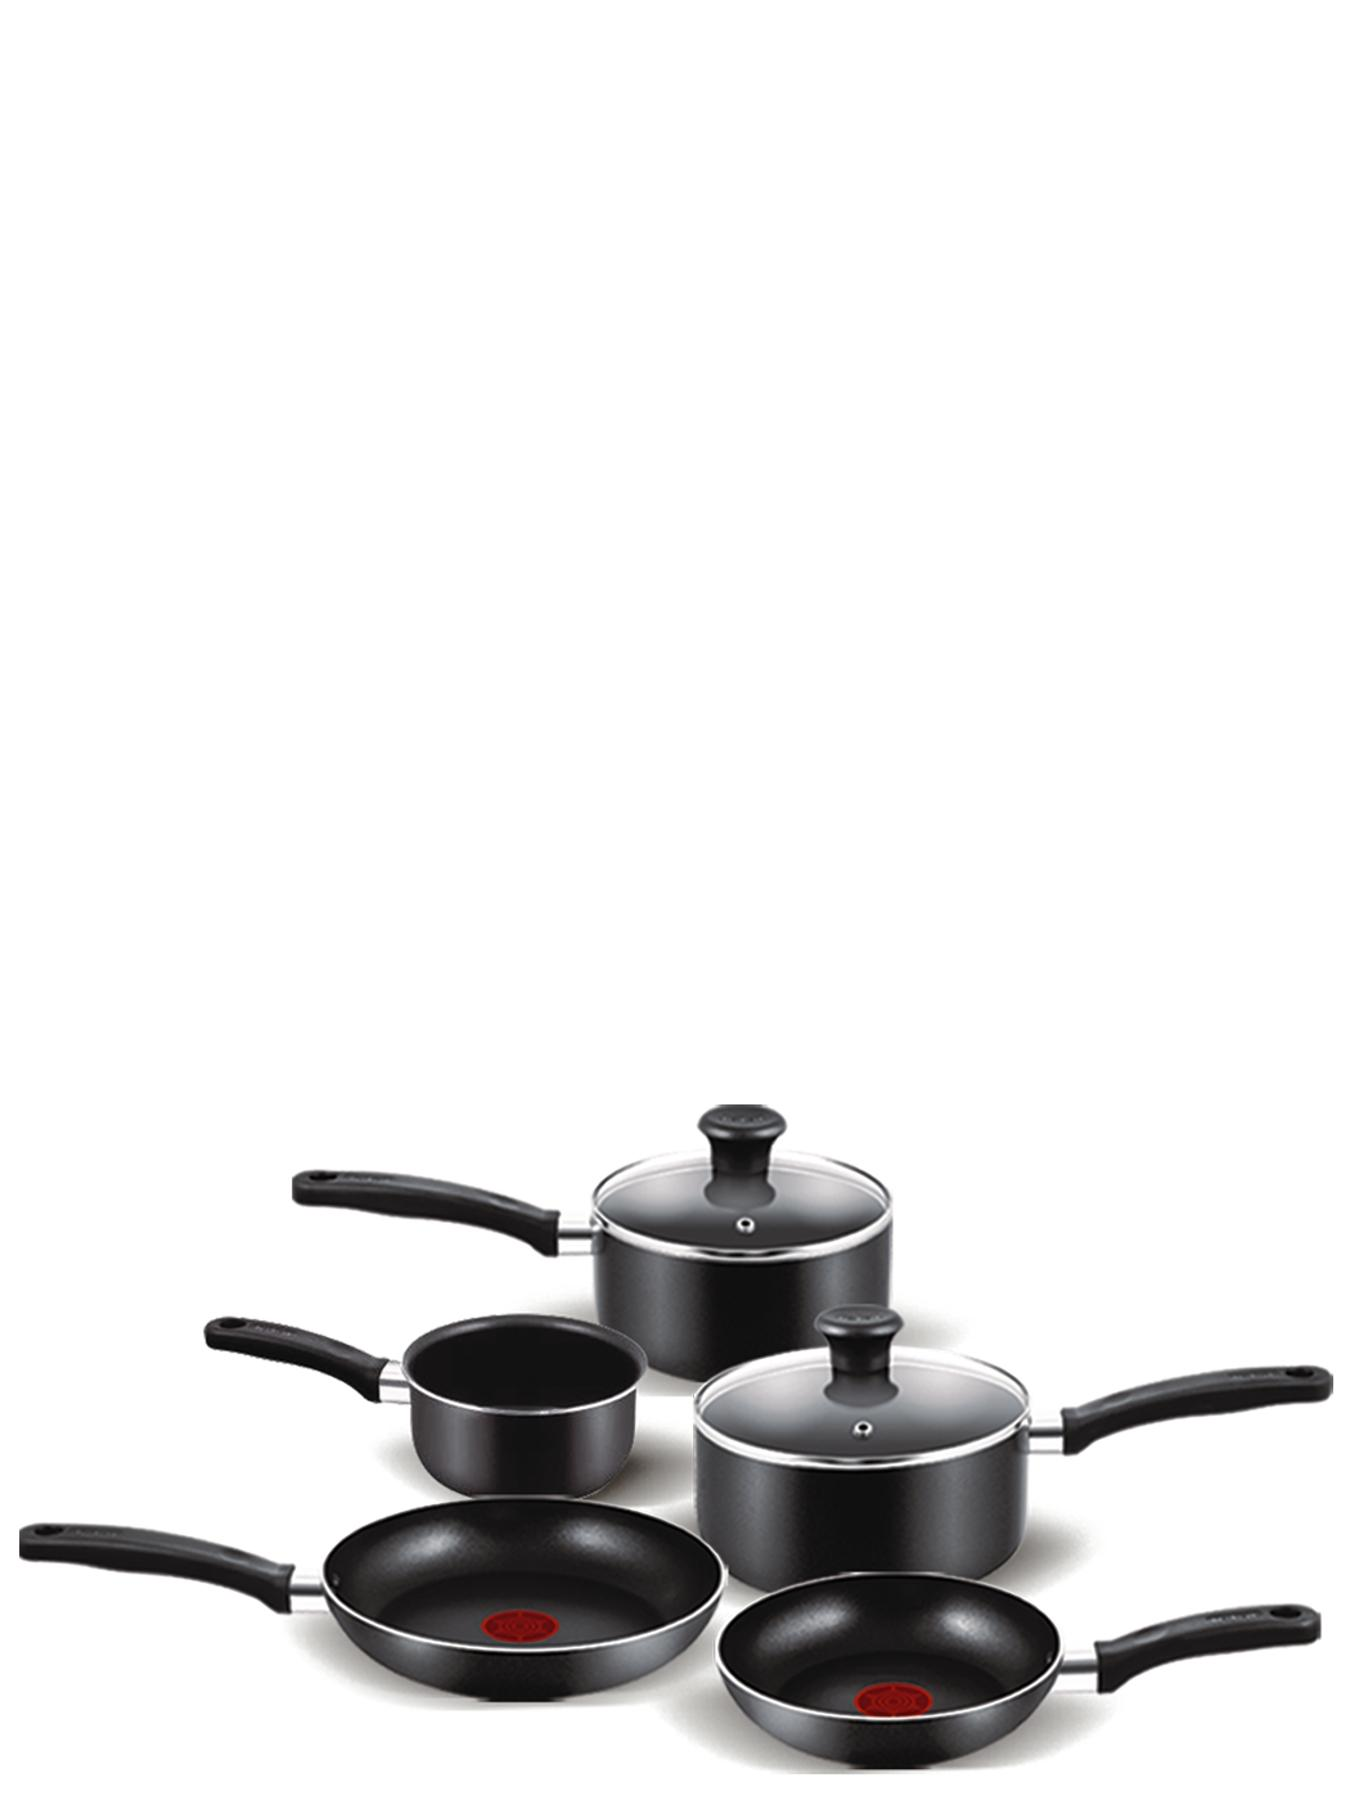 Tefal Delight 5 Piece Pan Set